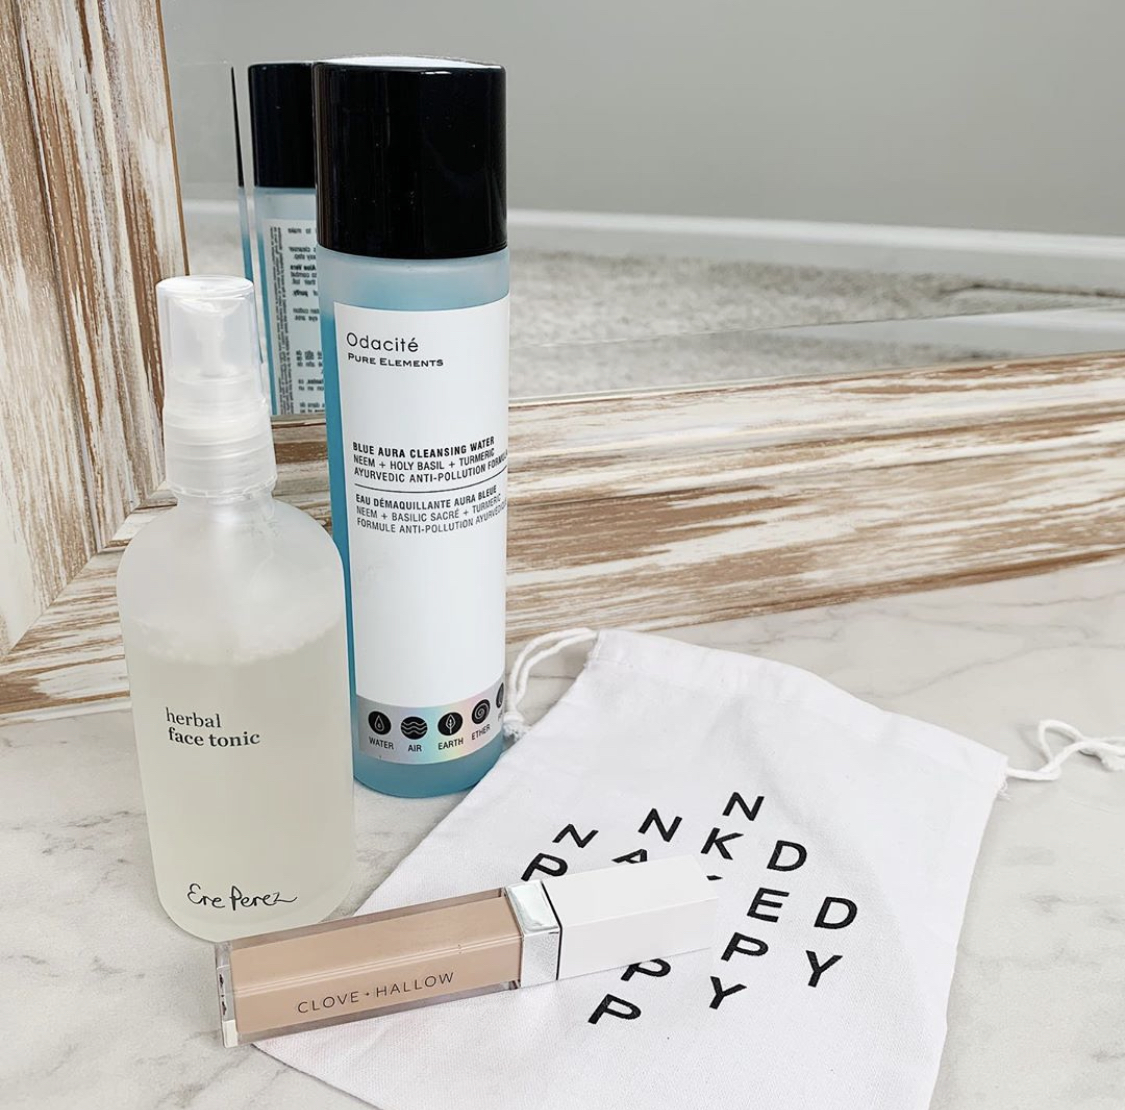 My Favorites from NakedPoppy   Trying NakedPoppy   Clove and Hallow Concealer, Blue Aura Cleansing Water Odacite, Ere Perez Face Tonic